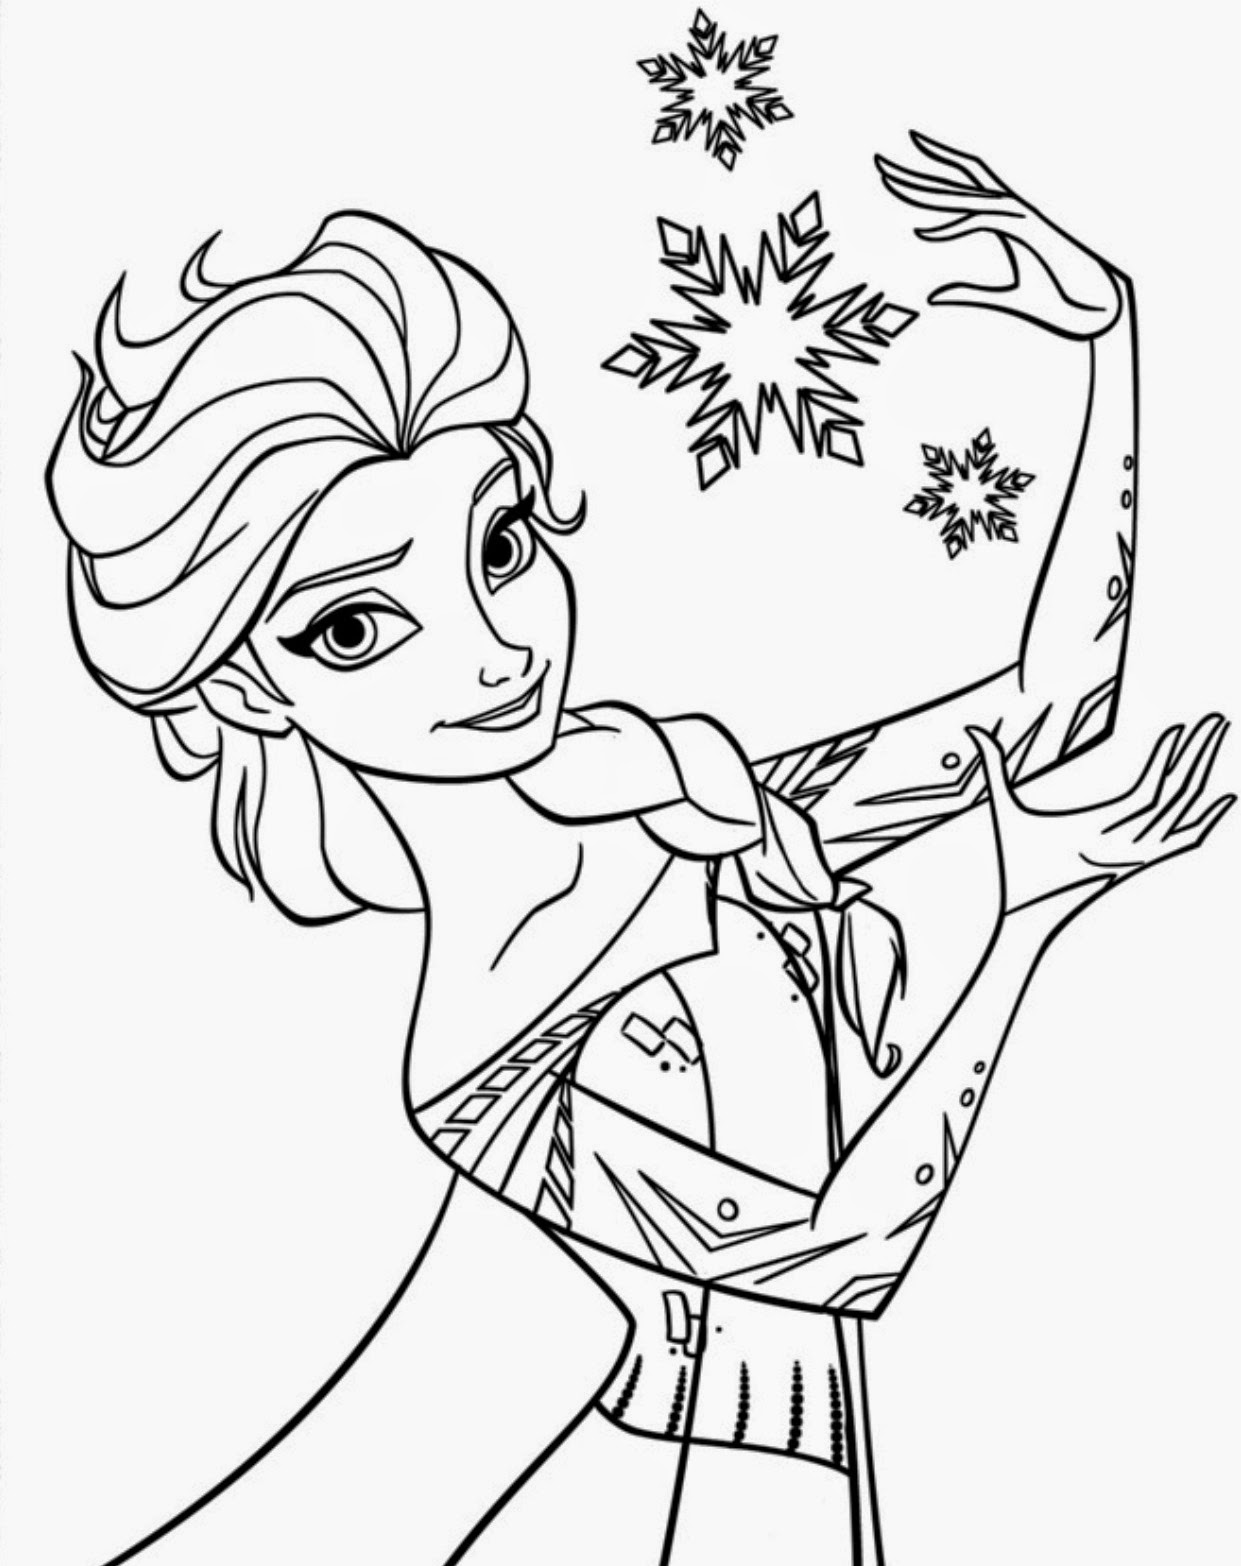 frozen coloring images coloring pages for kids frozen 2 we are happy to present images frozen coloring